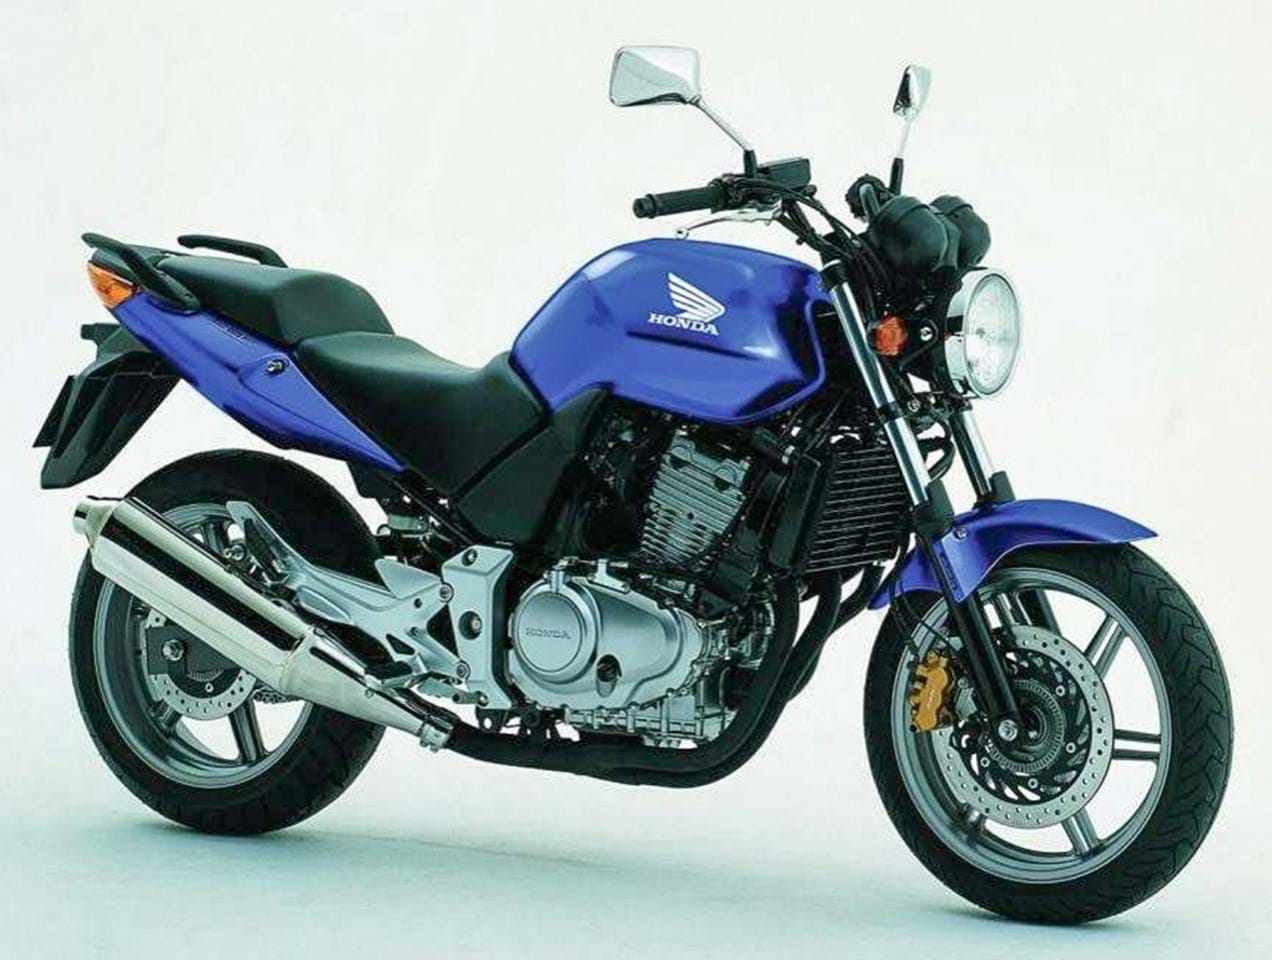 Honda CBF500 O Review For Sale Price Guide The Bike Market